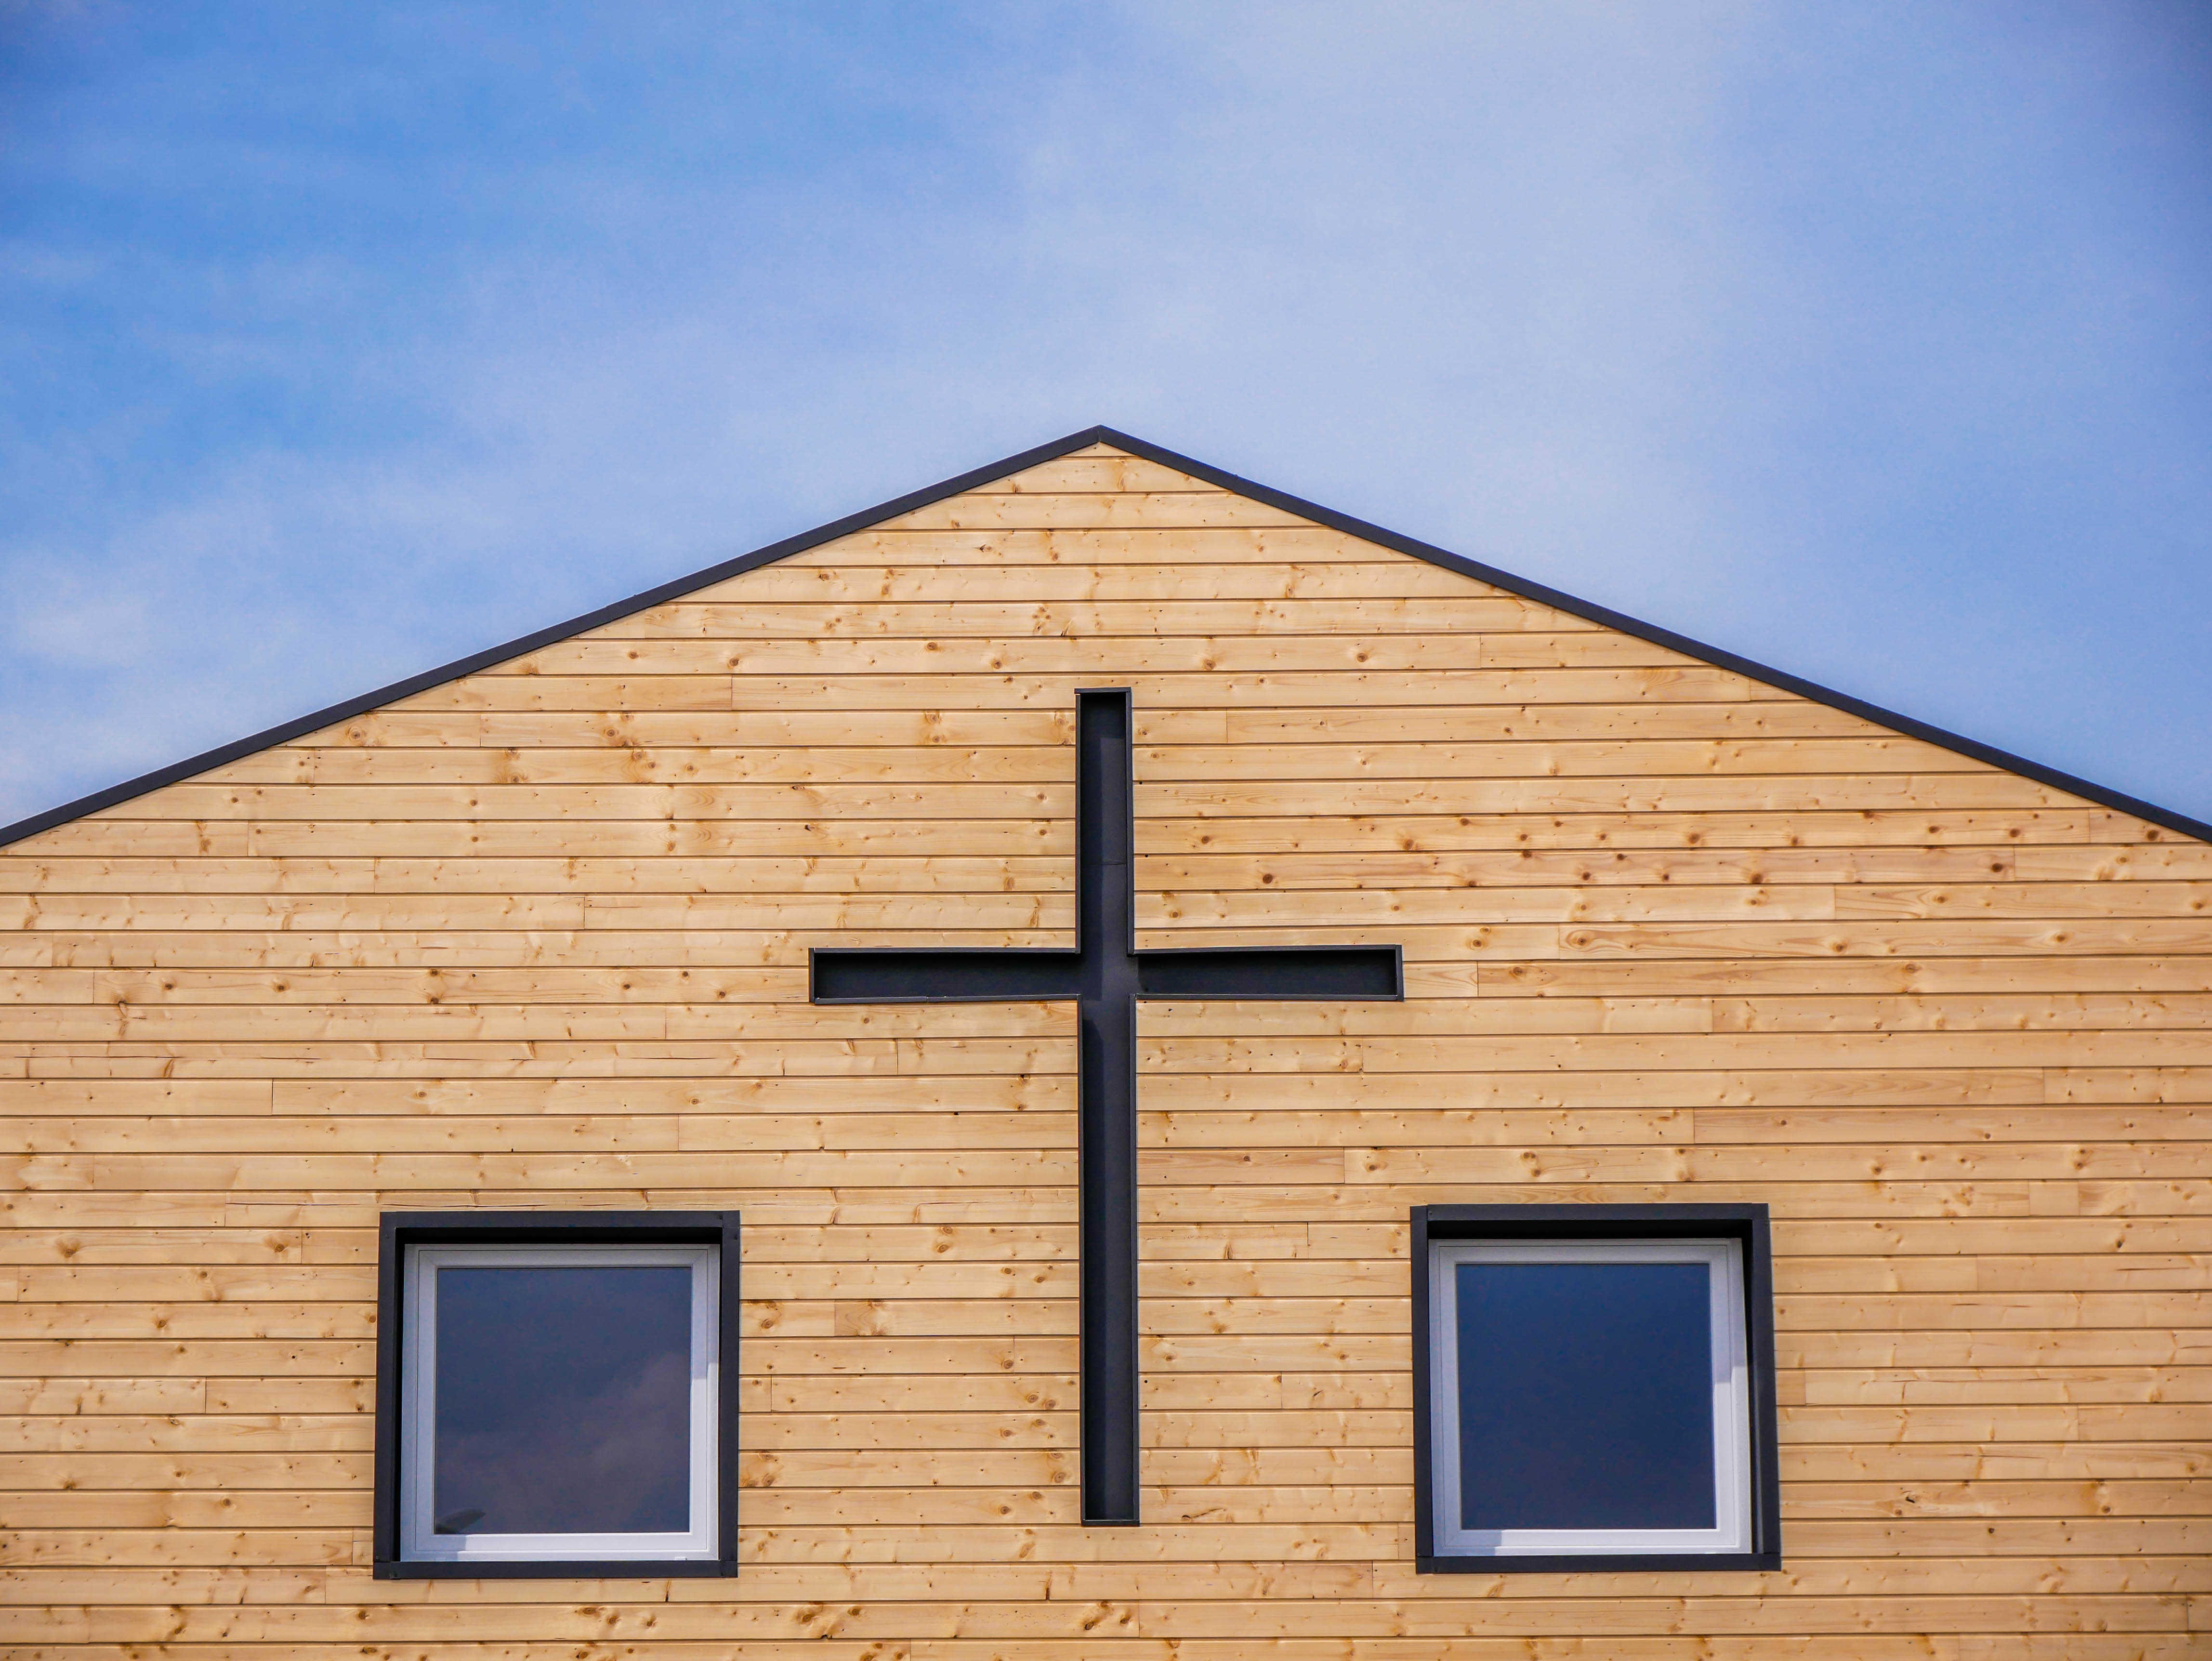 discover-ways-to-make-money-with-your-church-property